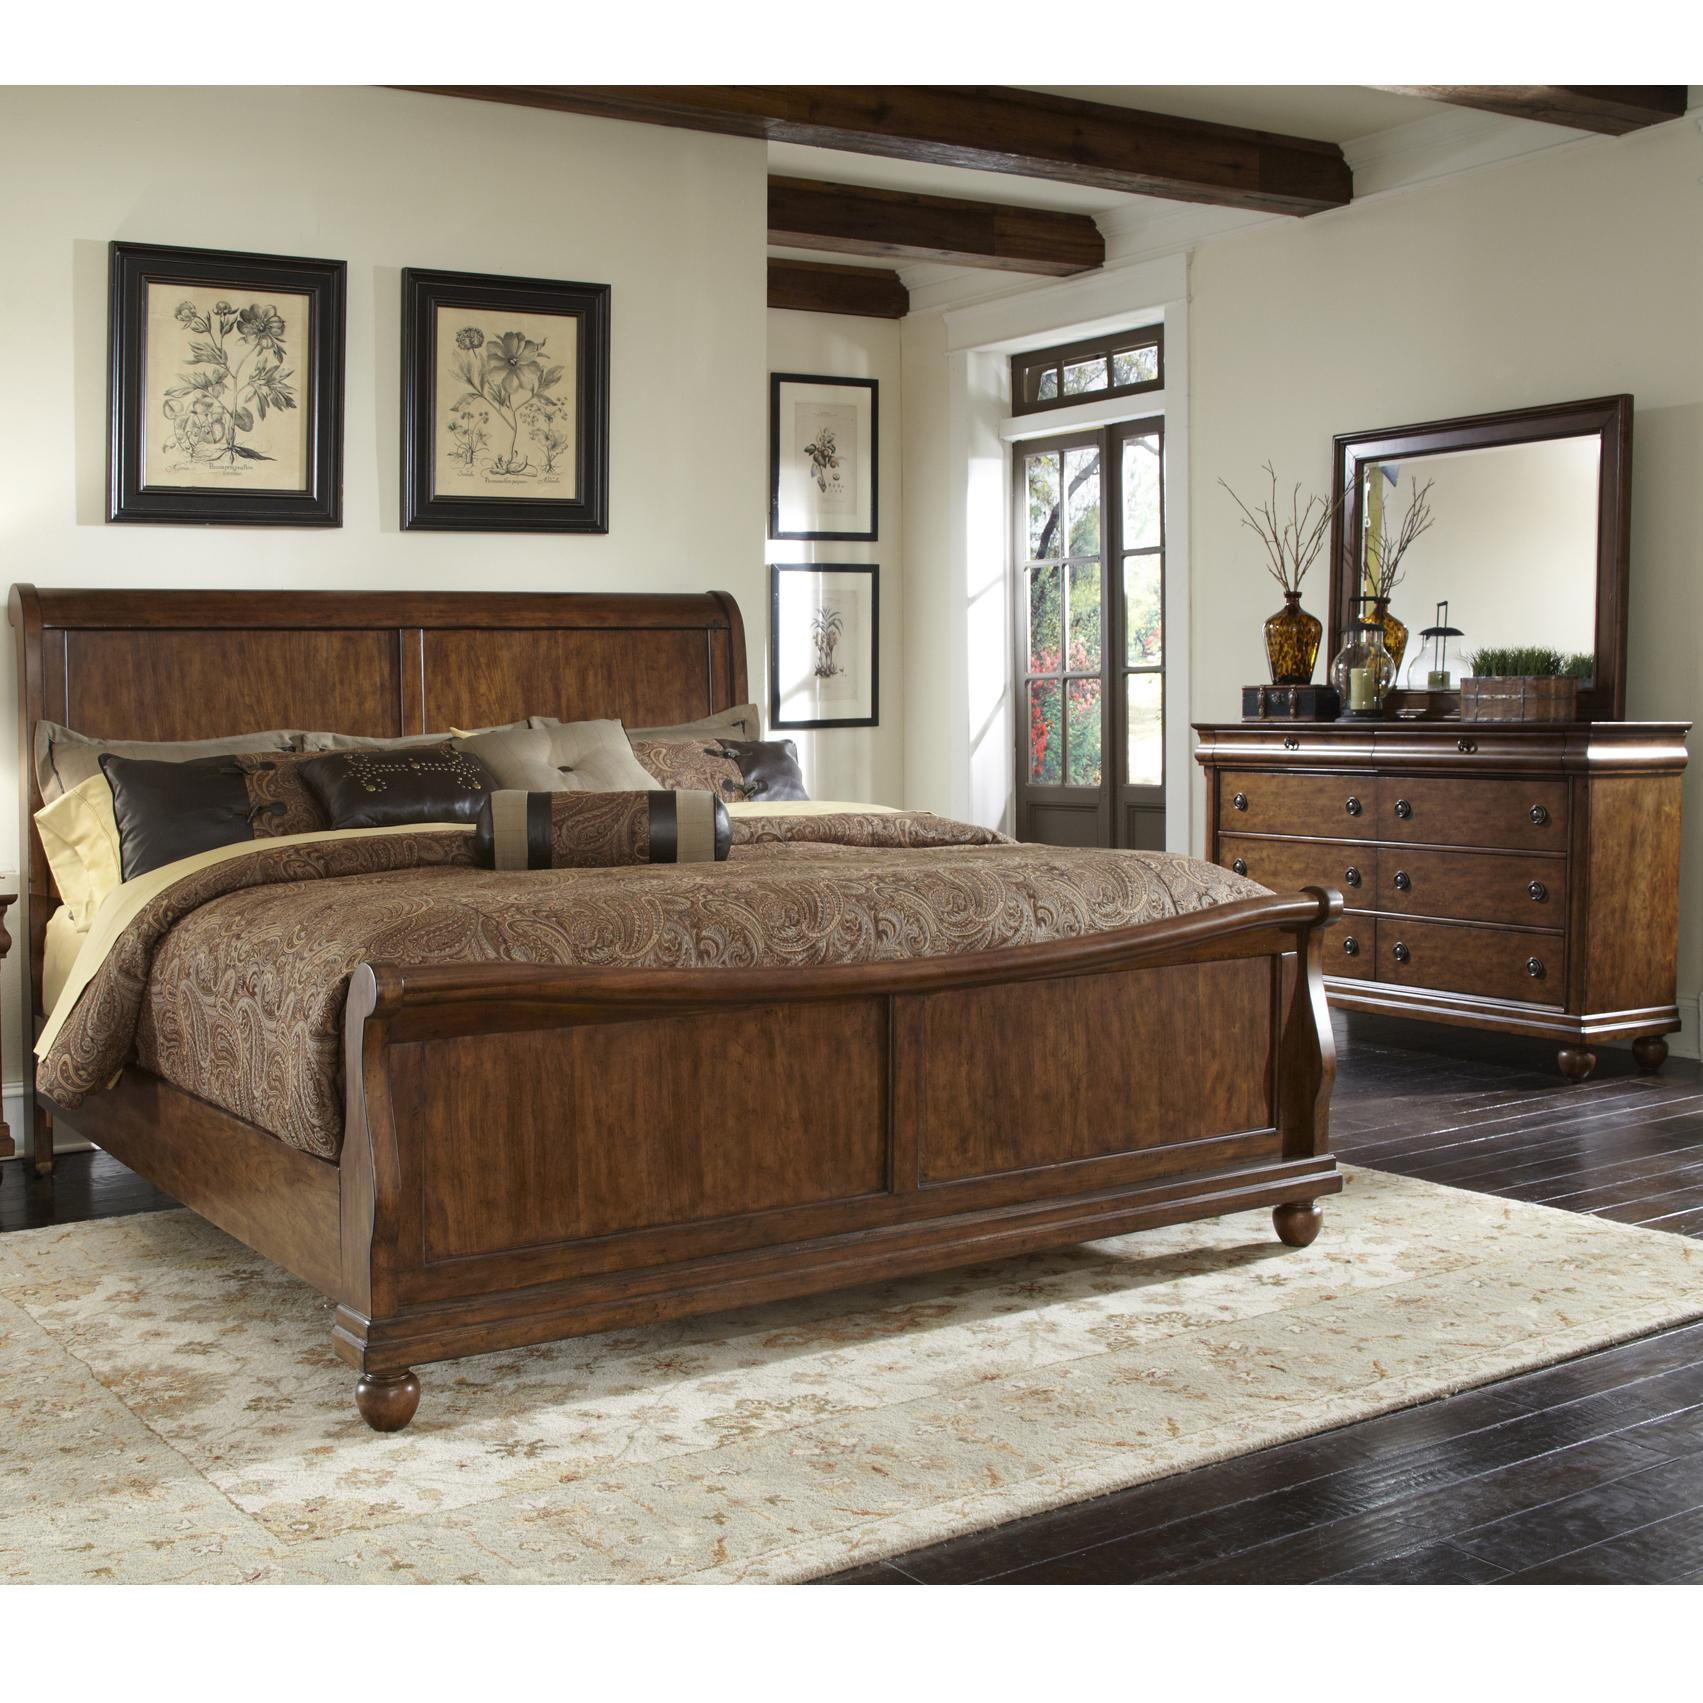 Queen Bedroom Group 1 By Liberty Furniture Wolf And